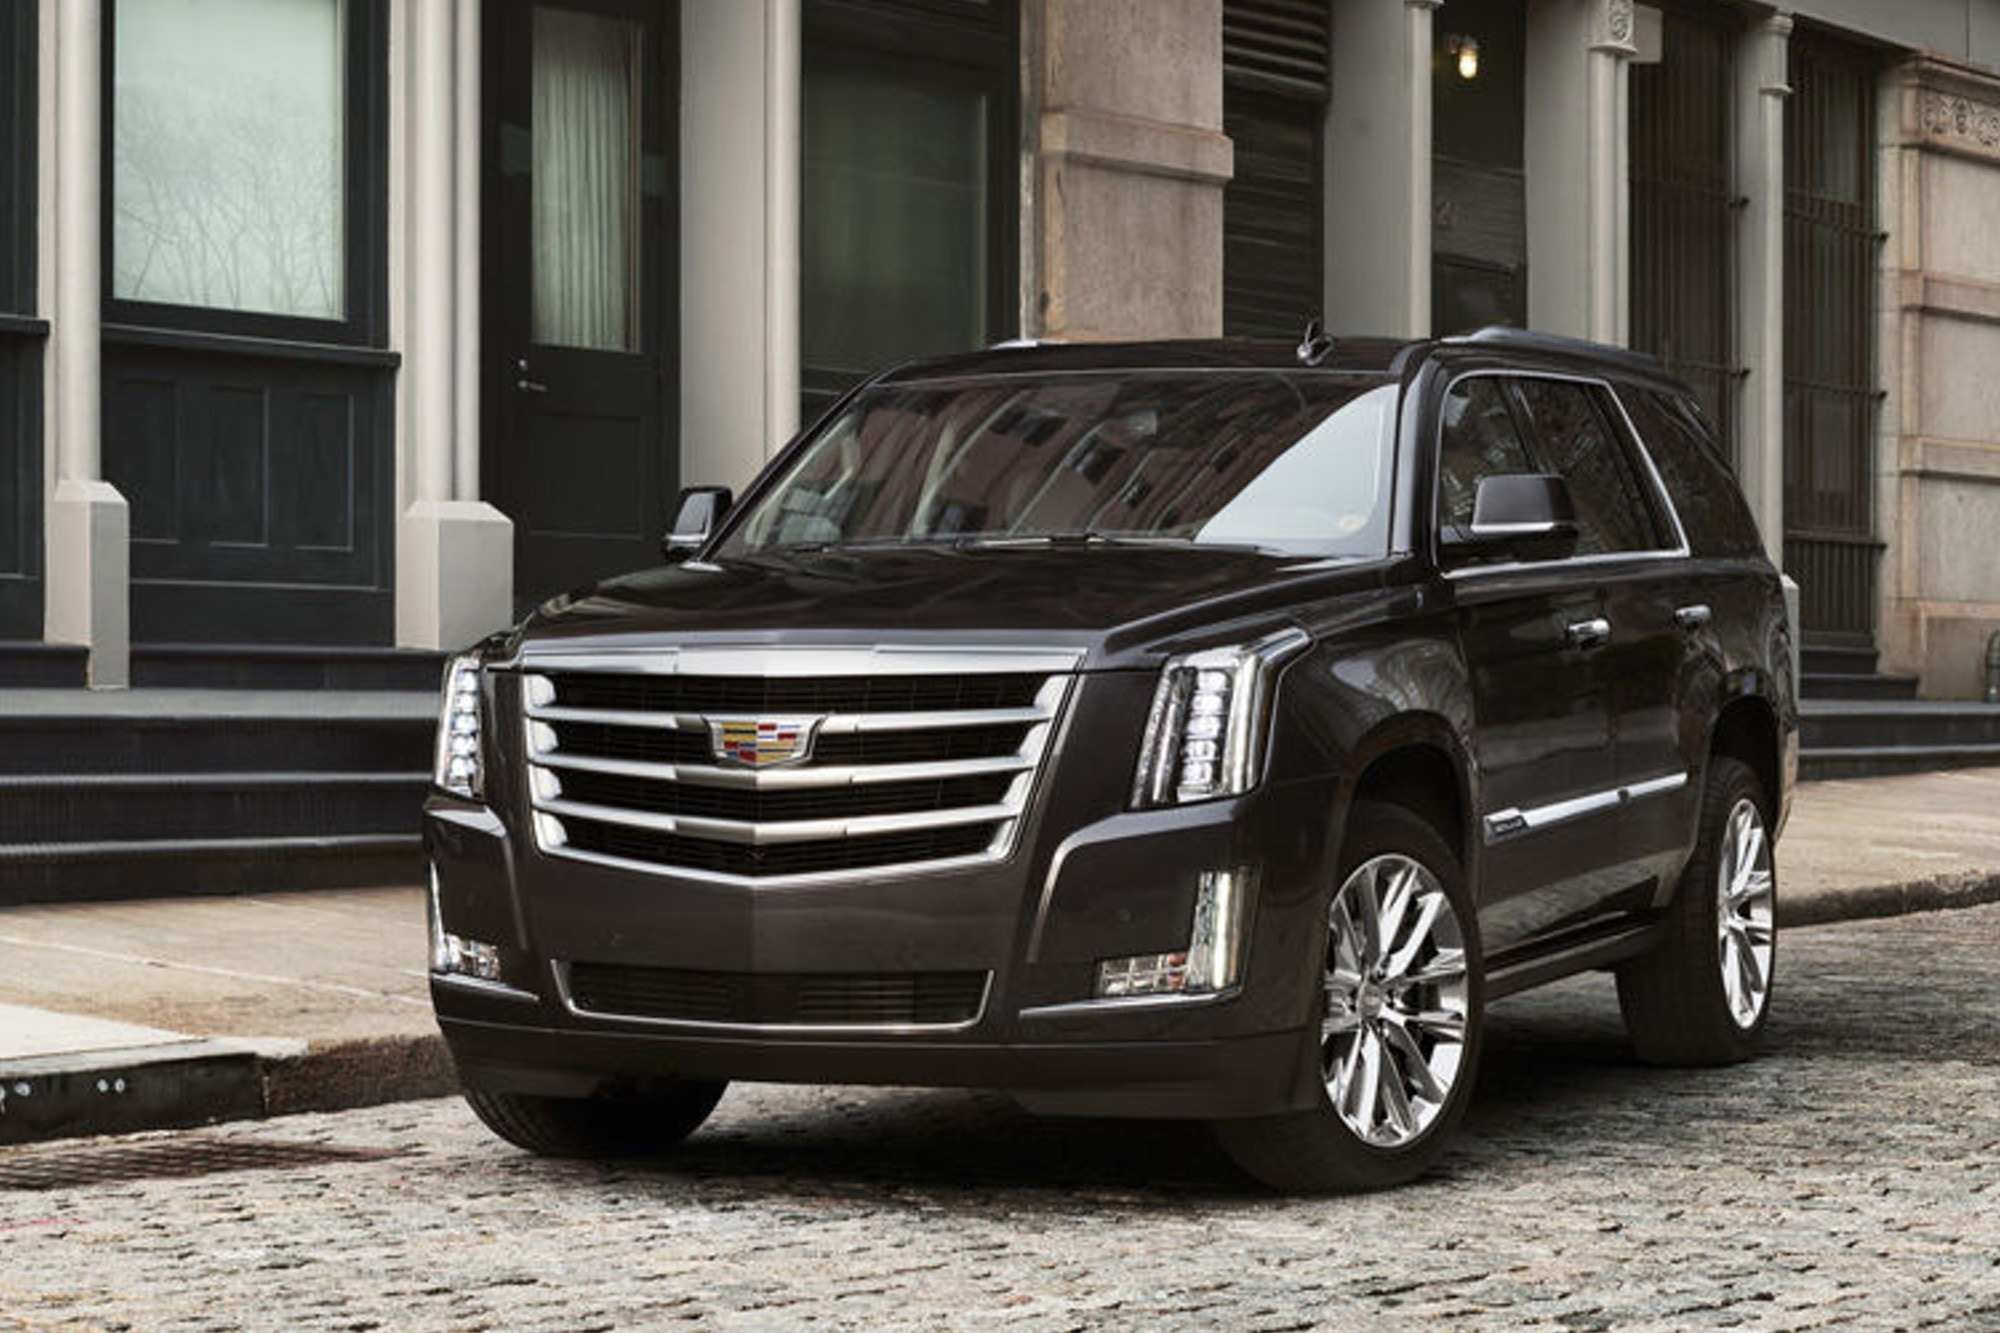 54 All New Pictures Of The 2020 Cadillac Escalade Pictures